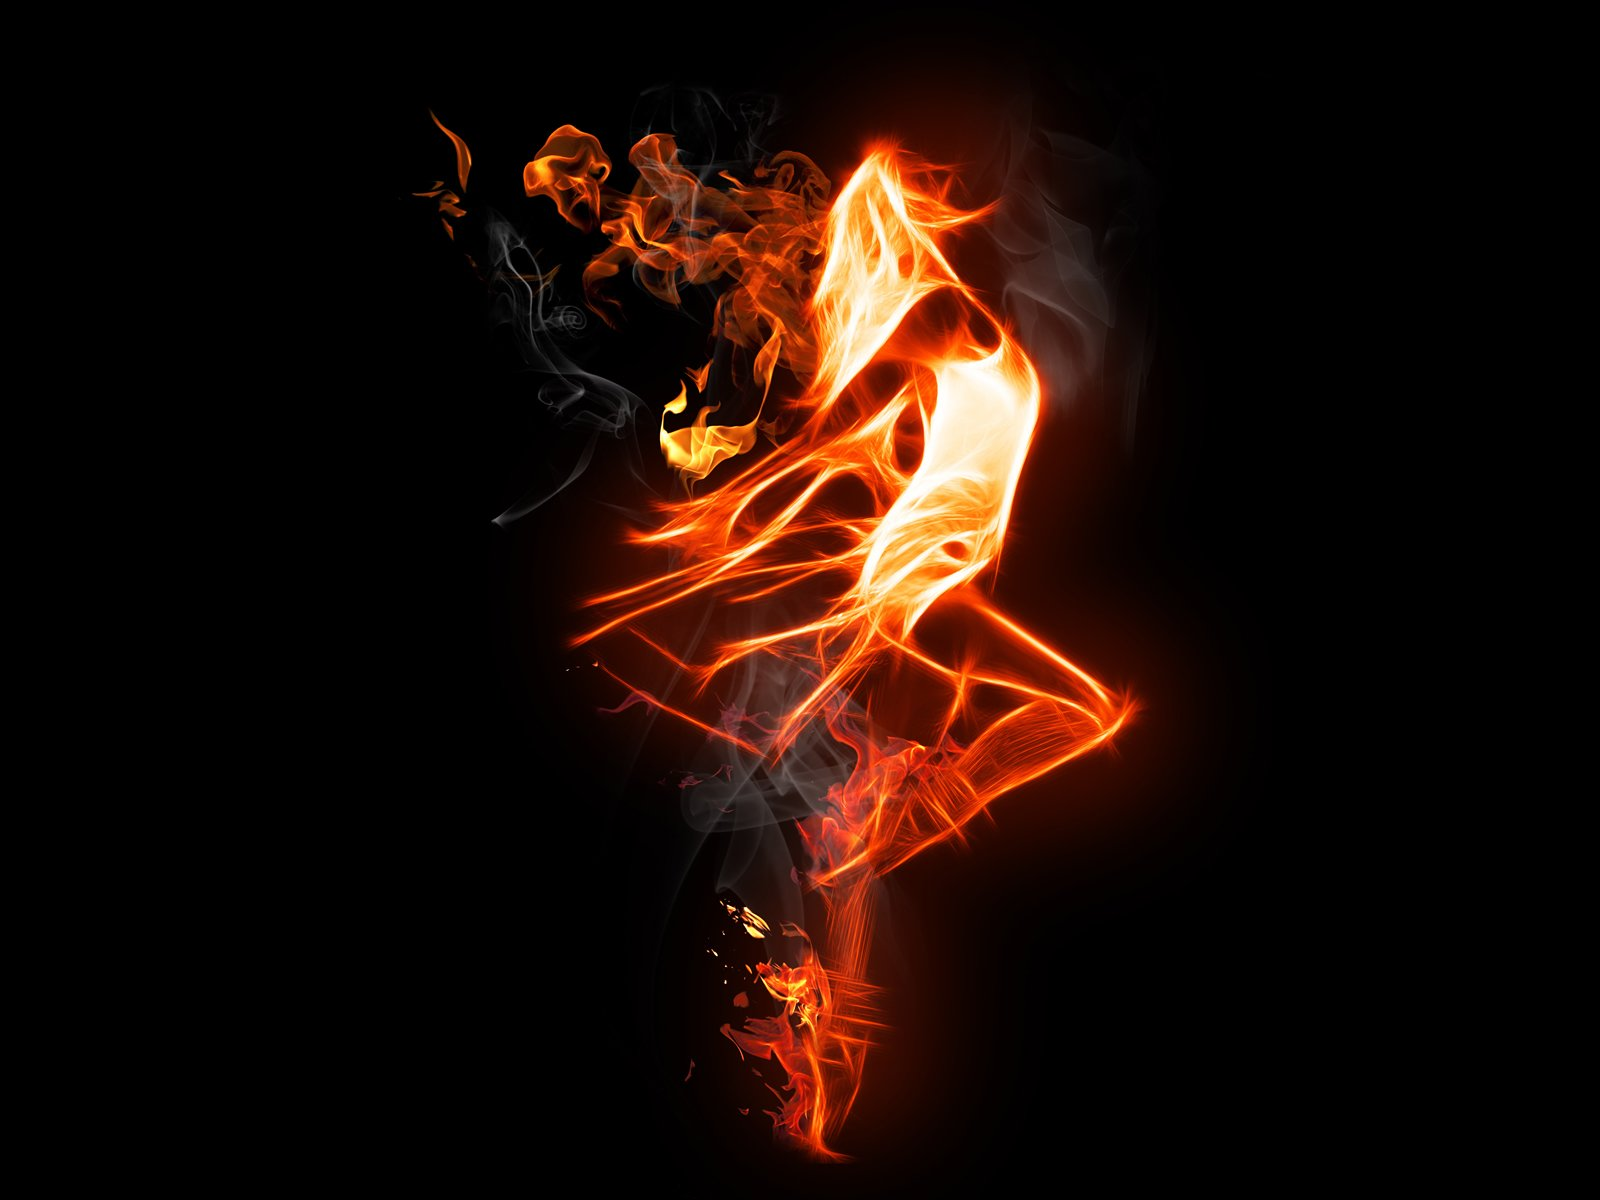 Female Fire Wallpaper And Background Image